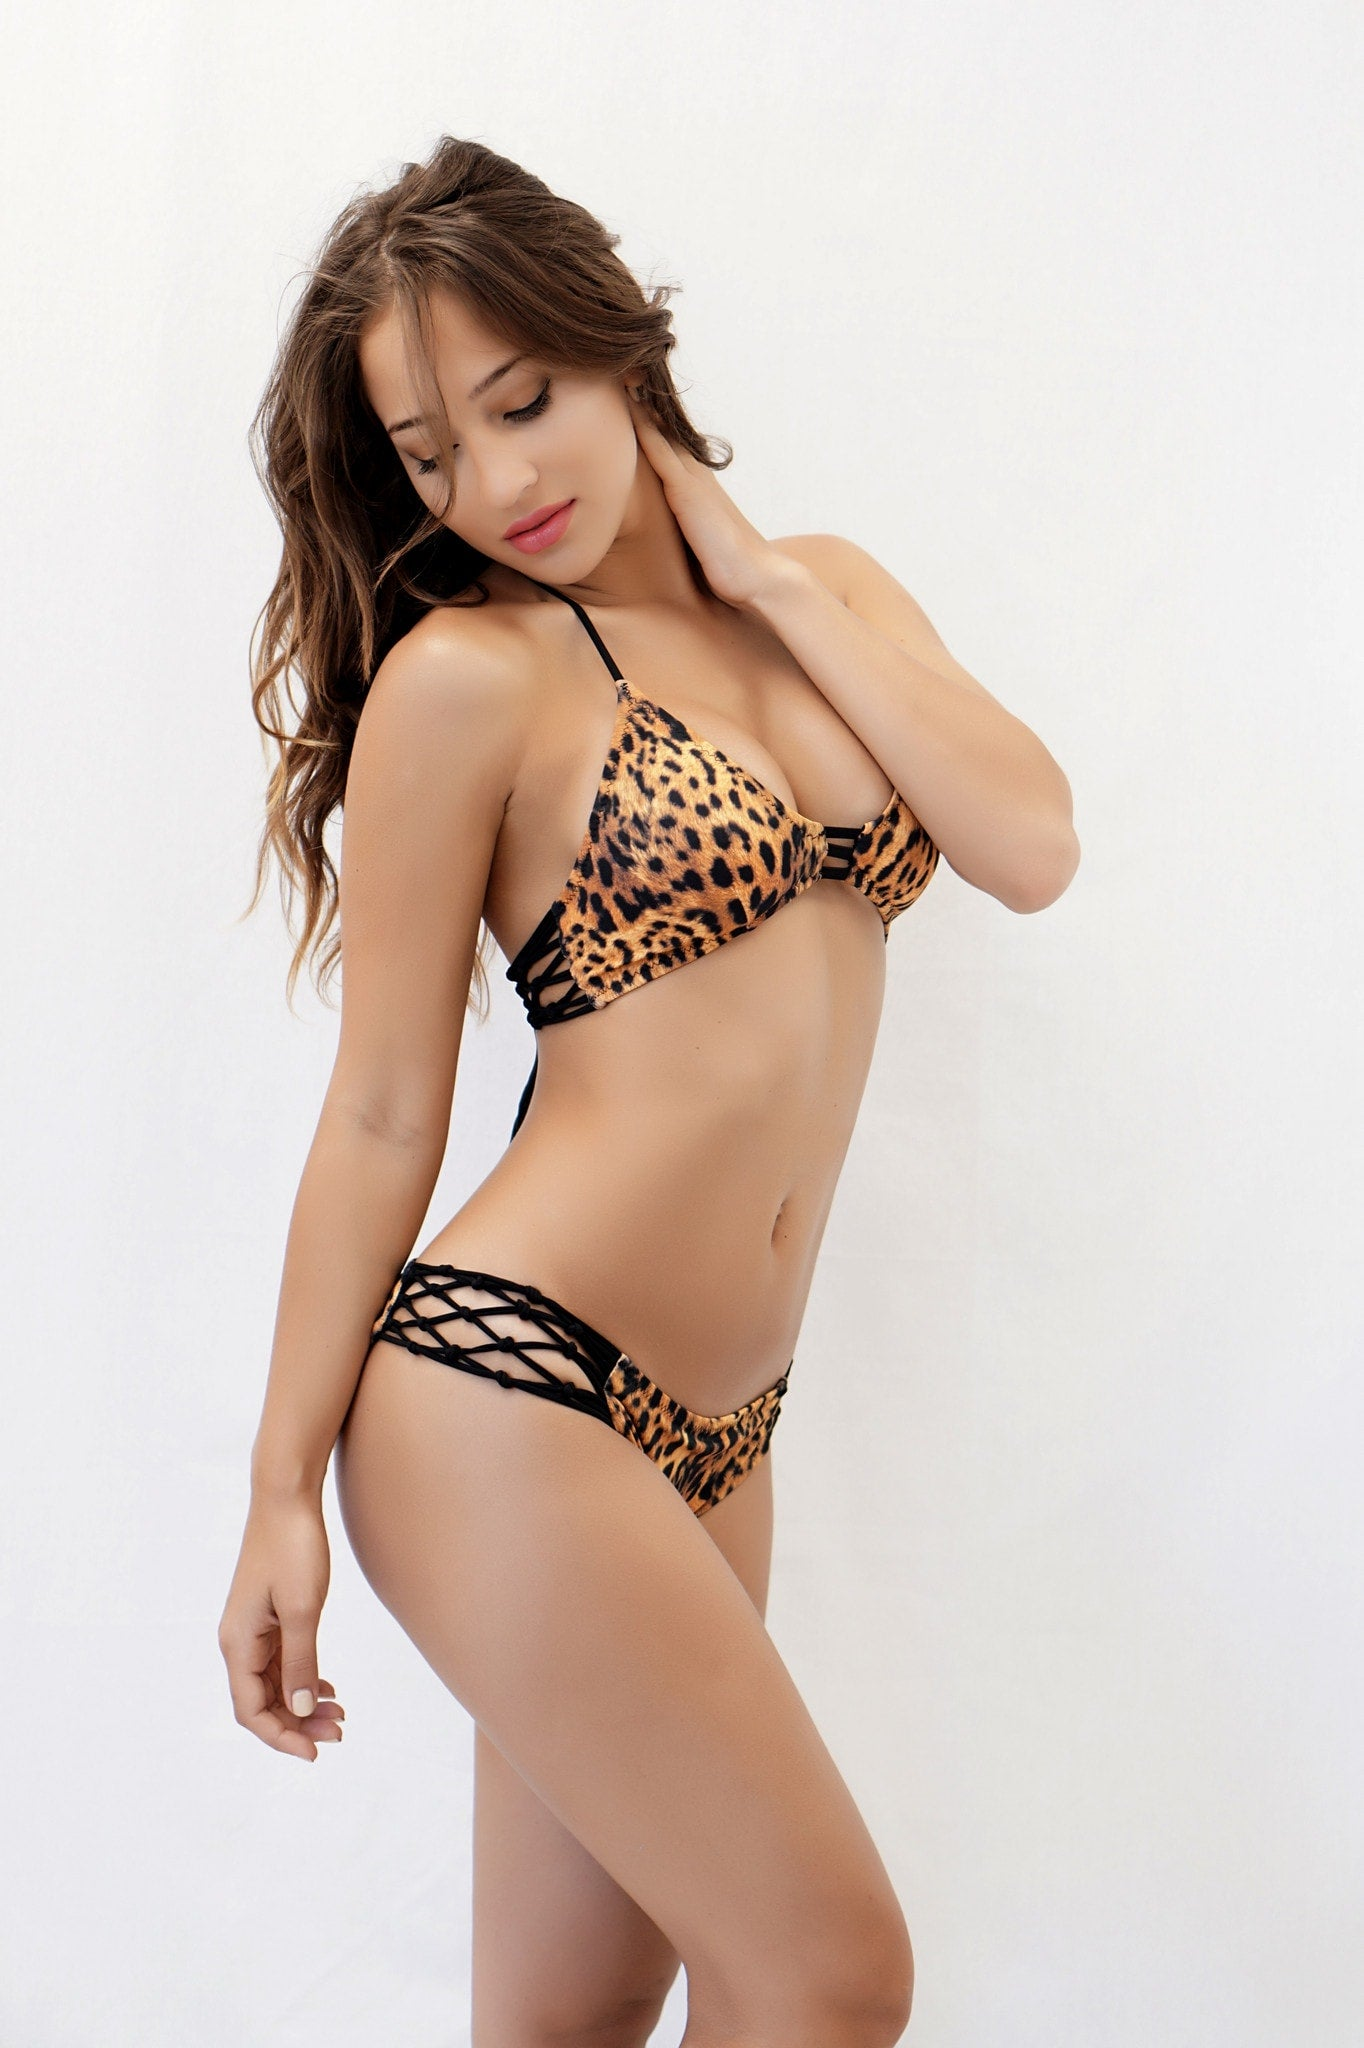 Look fiercely sexy in this leopard print bikini featuring small triangle cups, clear halter straps, clear underbust straps with a tie back closure, and matching micro bottoms with clear straps and thong back.